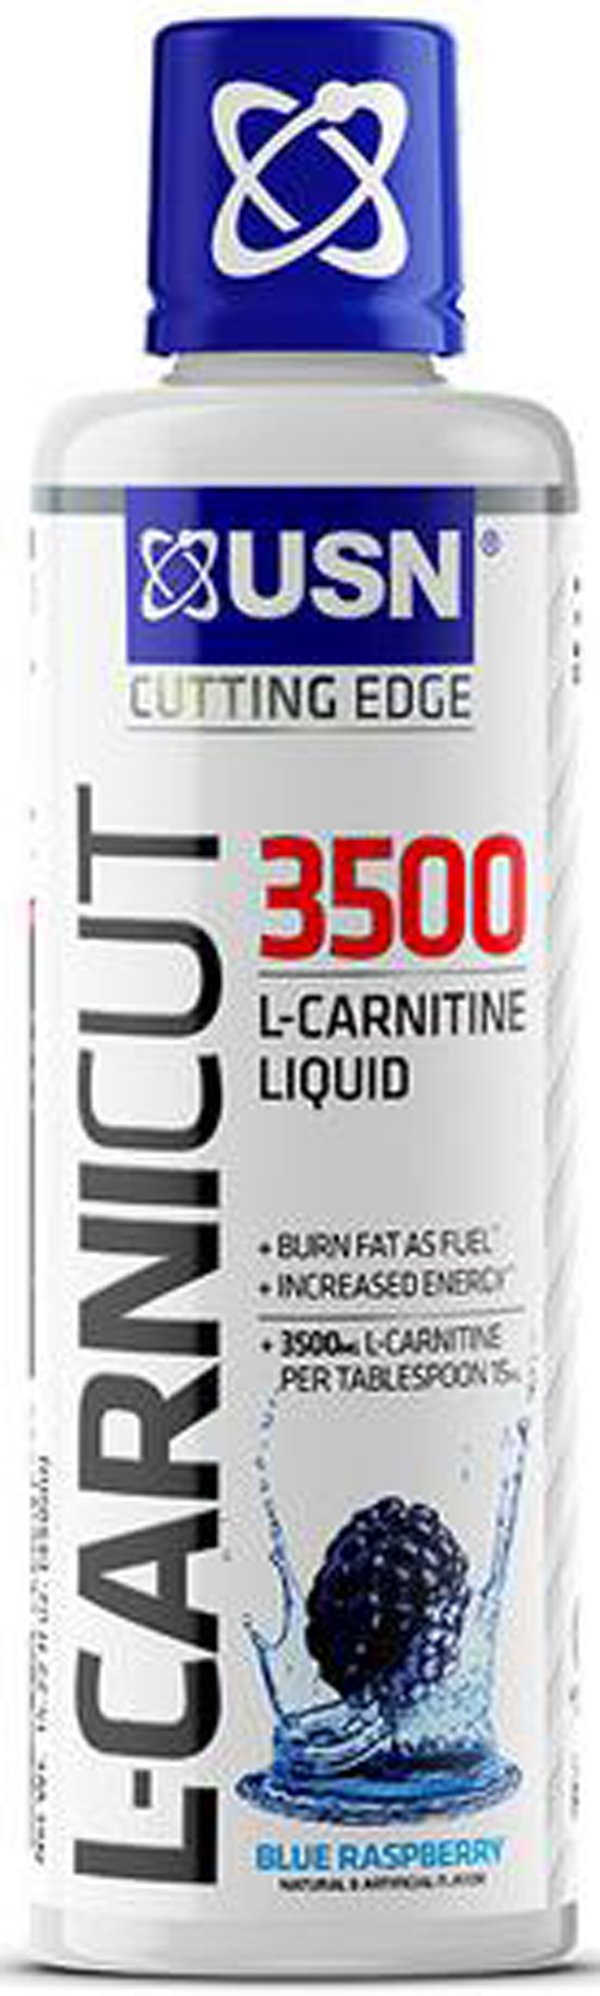 USN L-Carnicut 3500 Liquid 30 servings